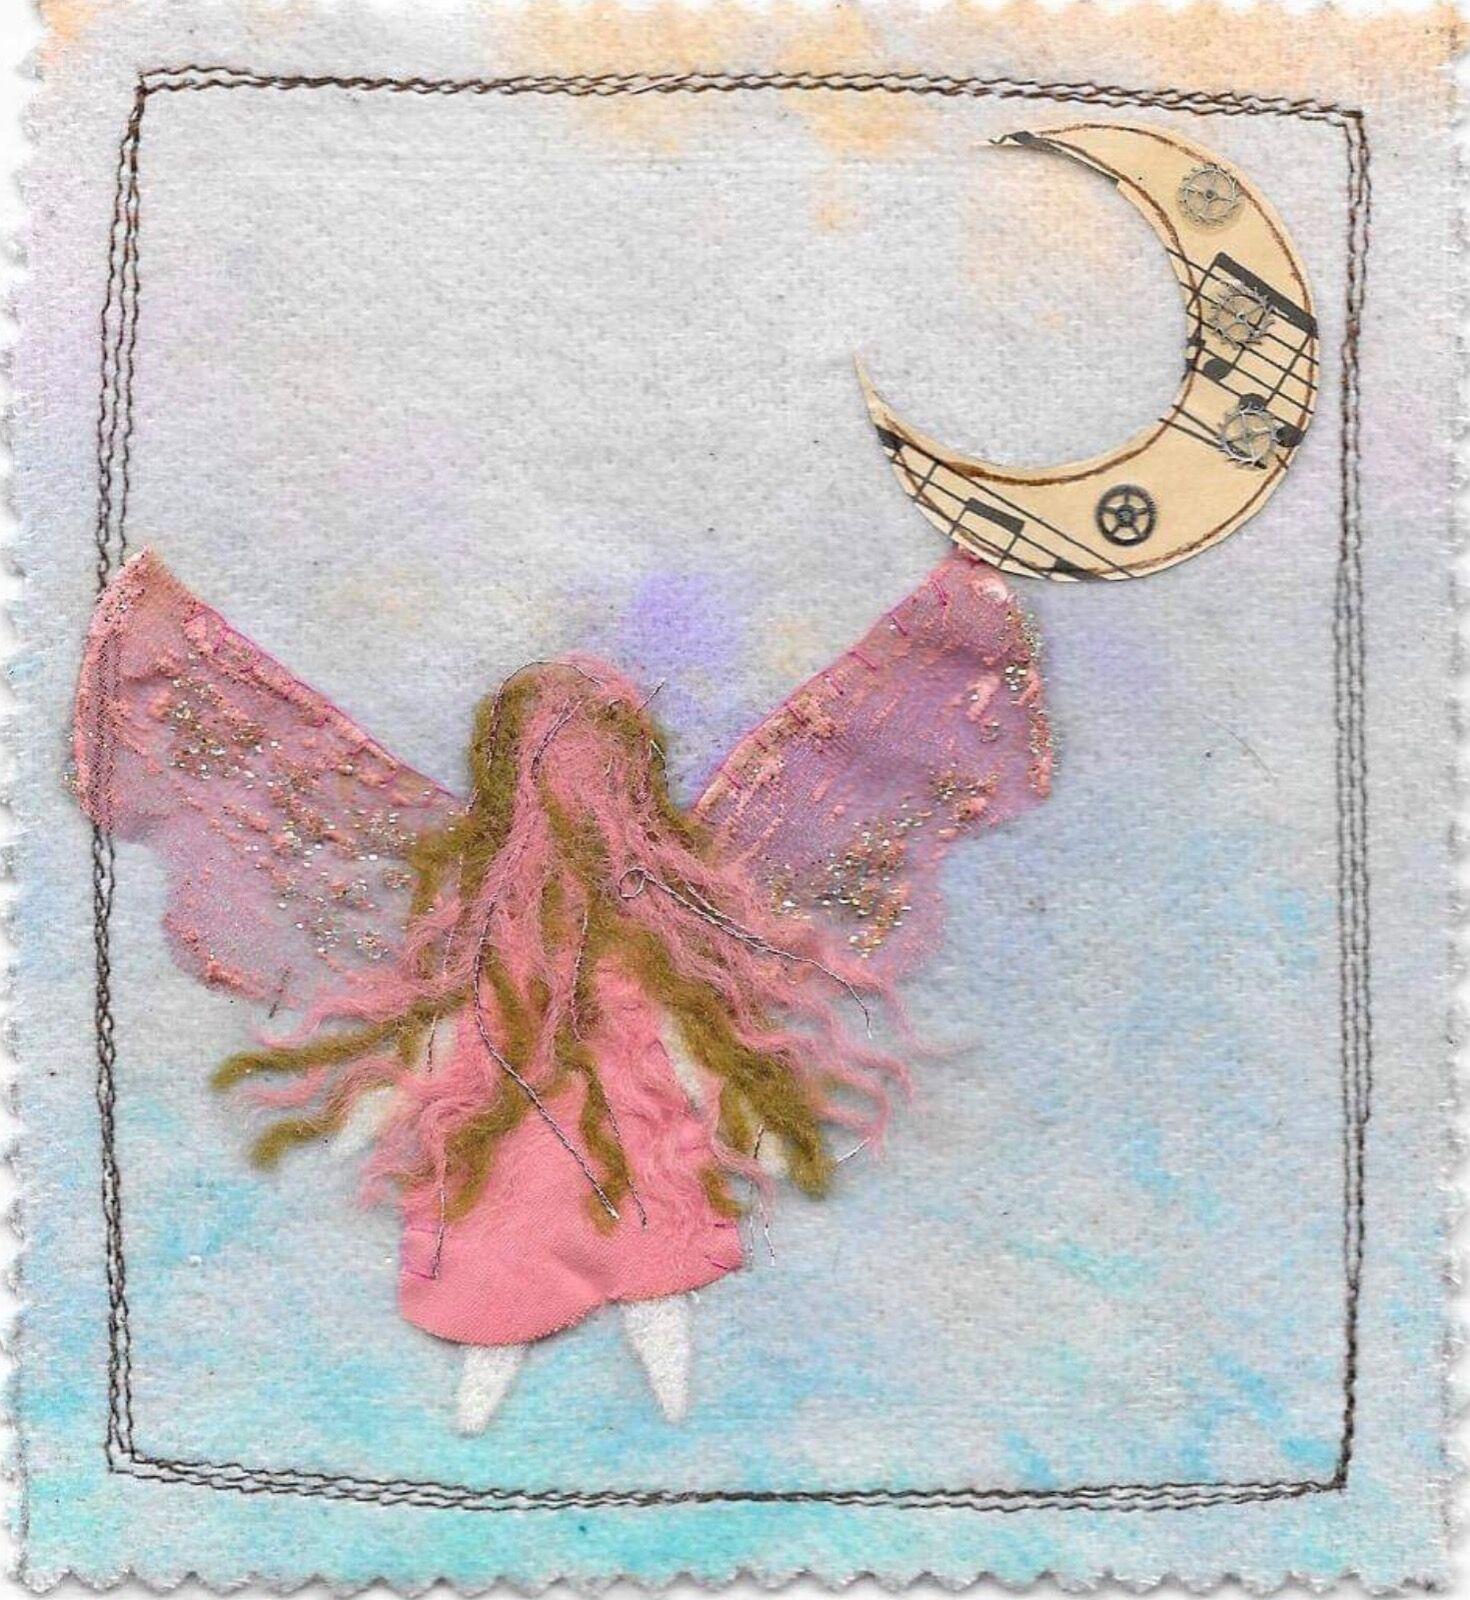 Faerie and moon card